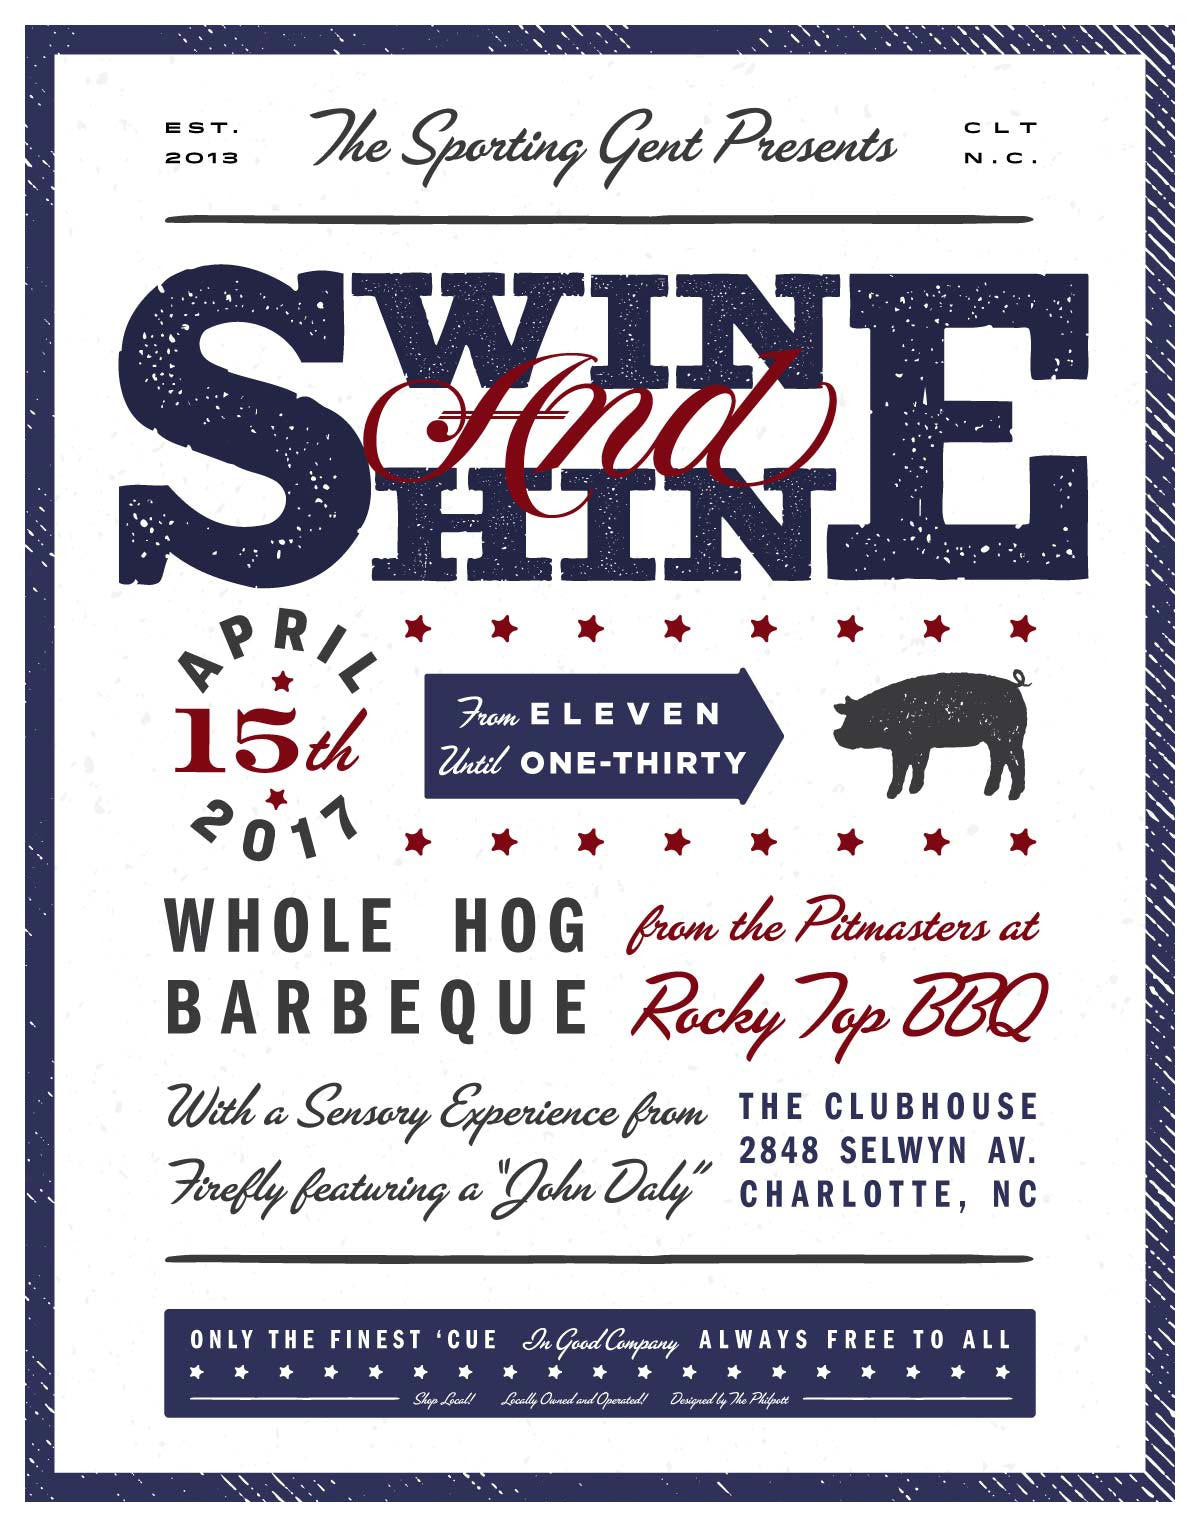 Swine and Shine Poster